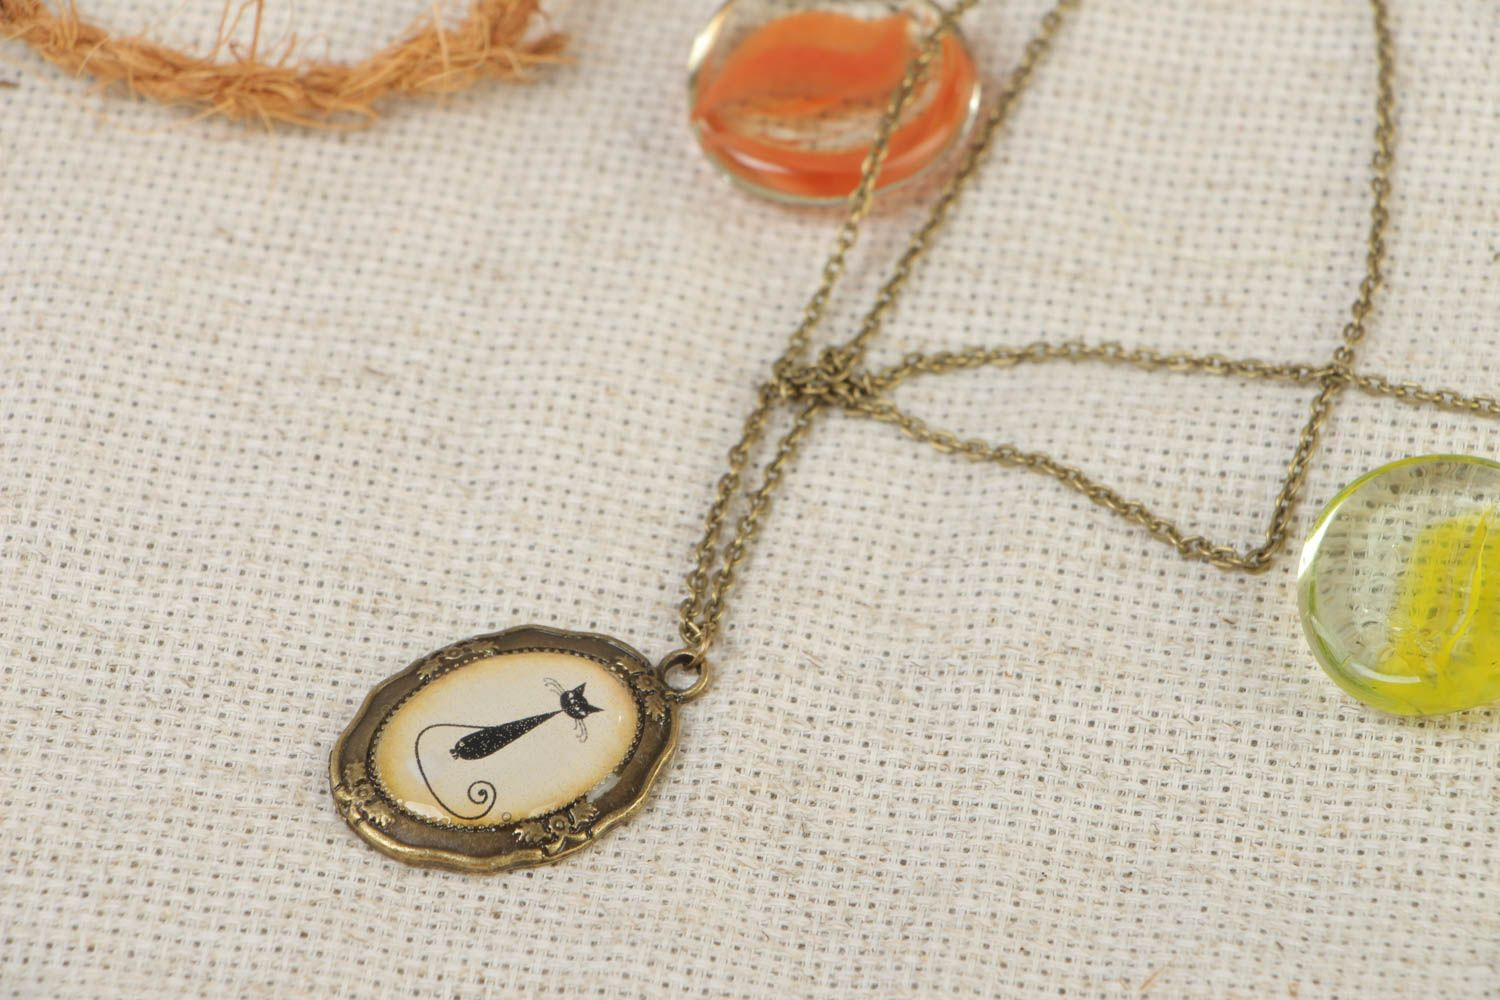 Handmade vintage metal oval necklace with cat image coated with glass glaze photo 1